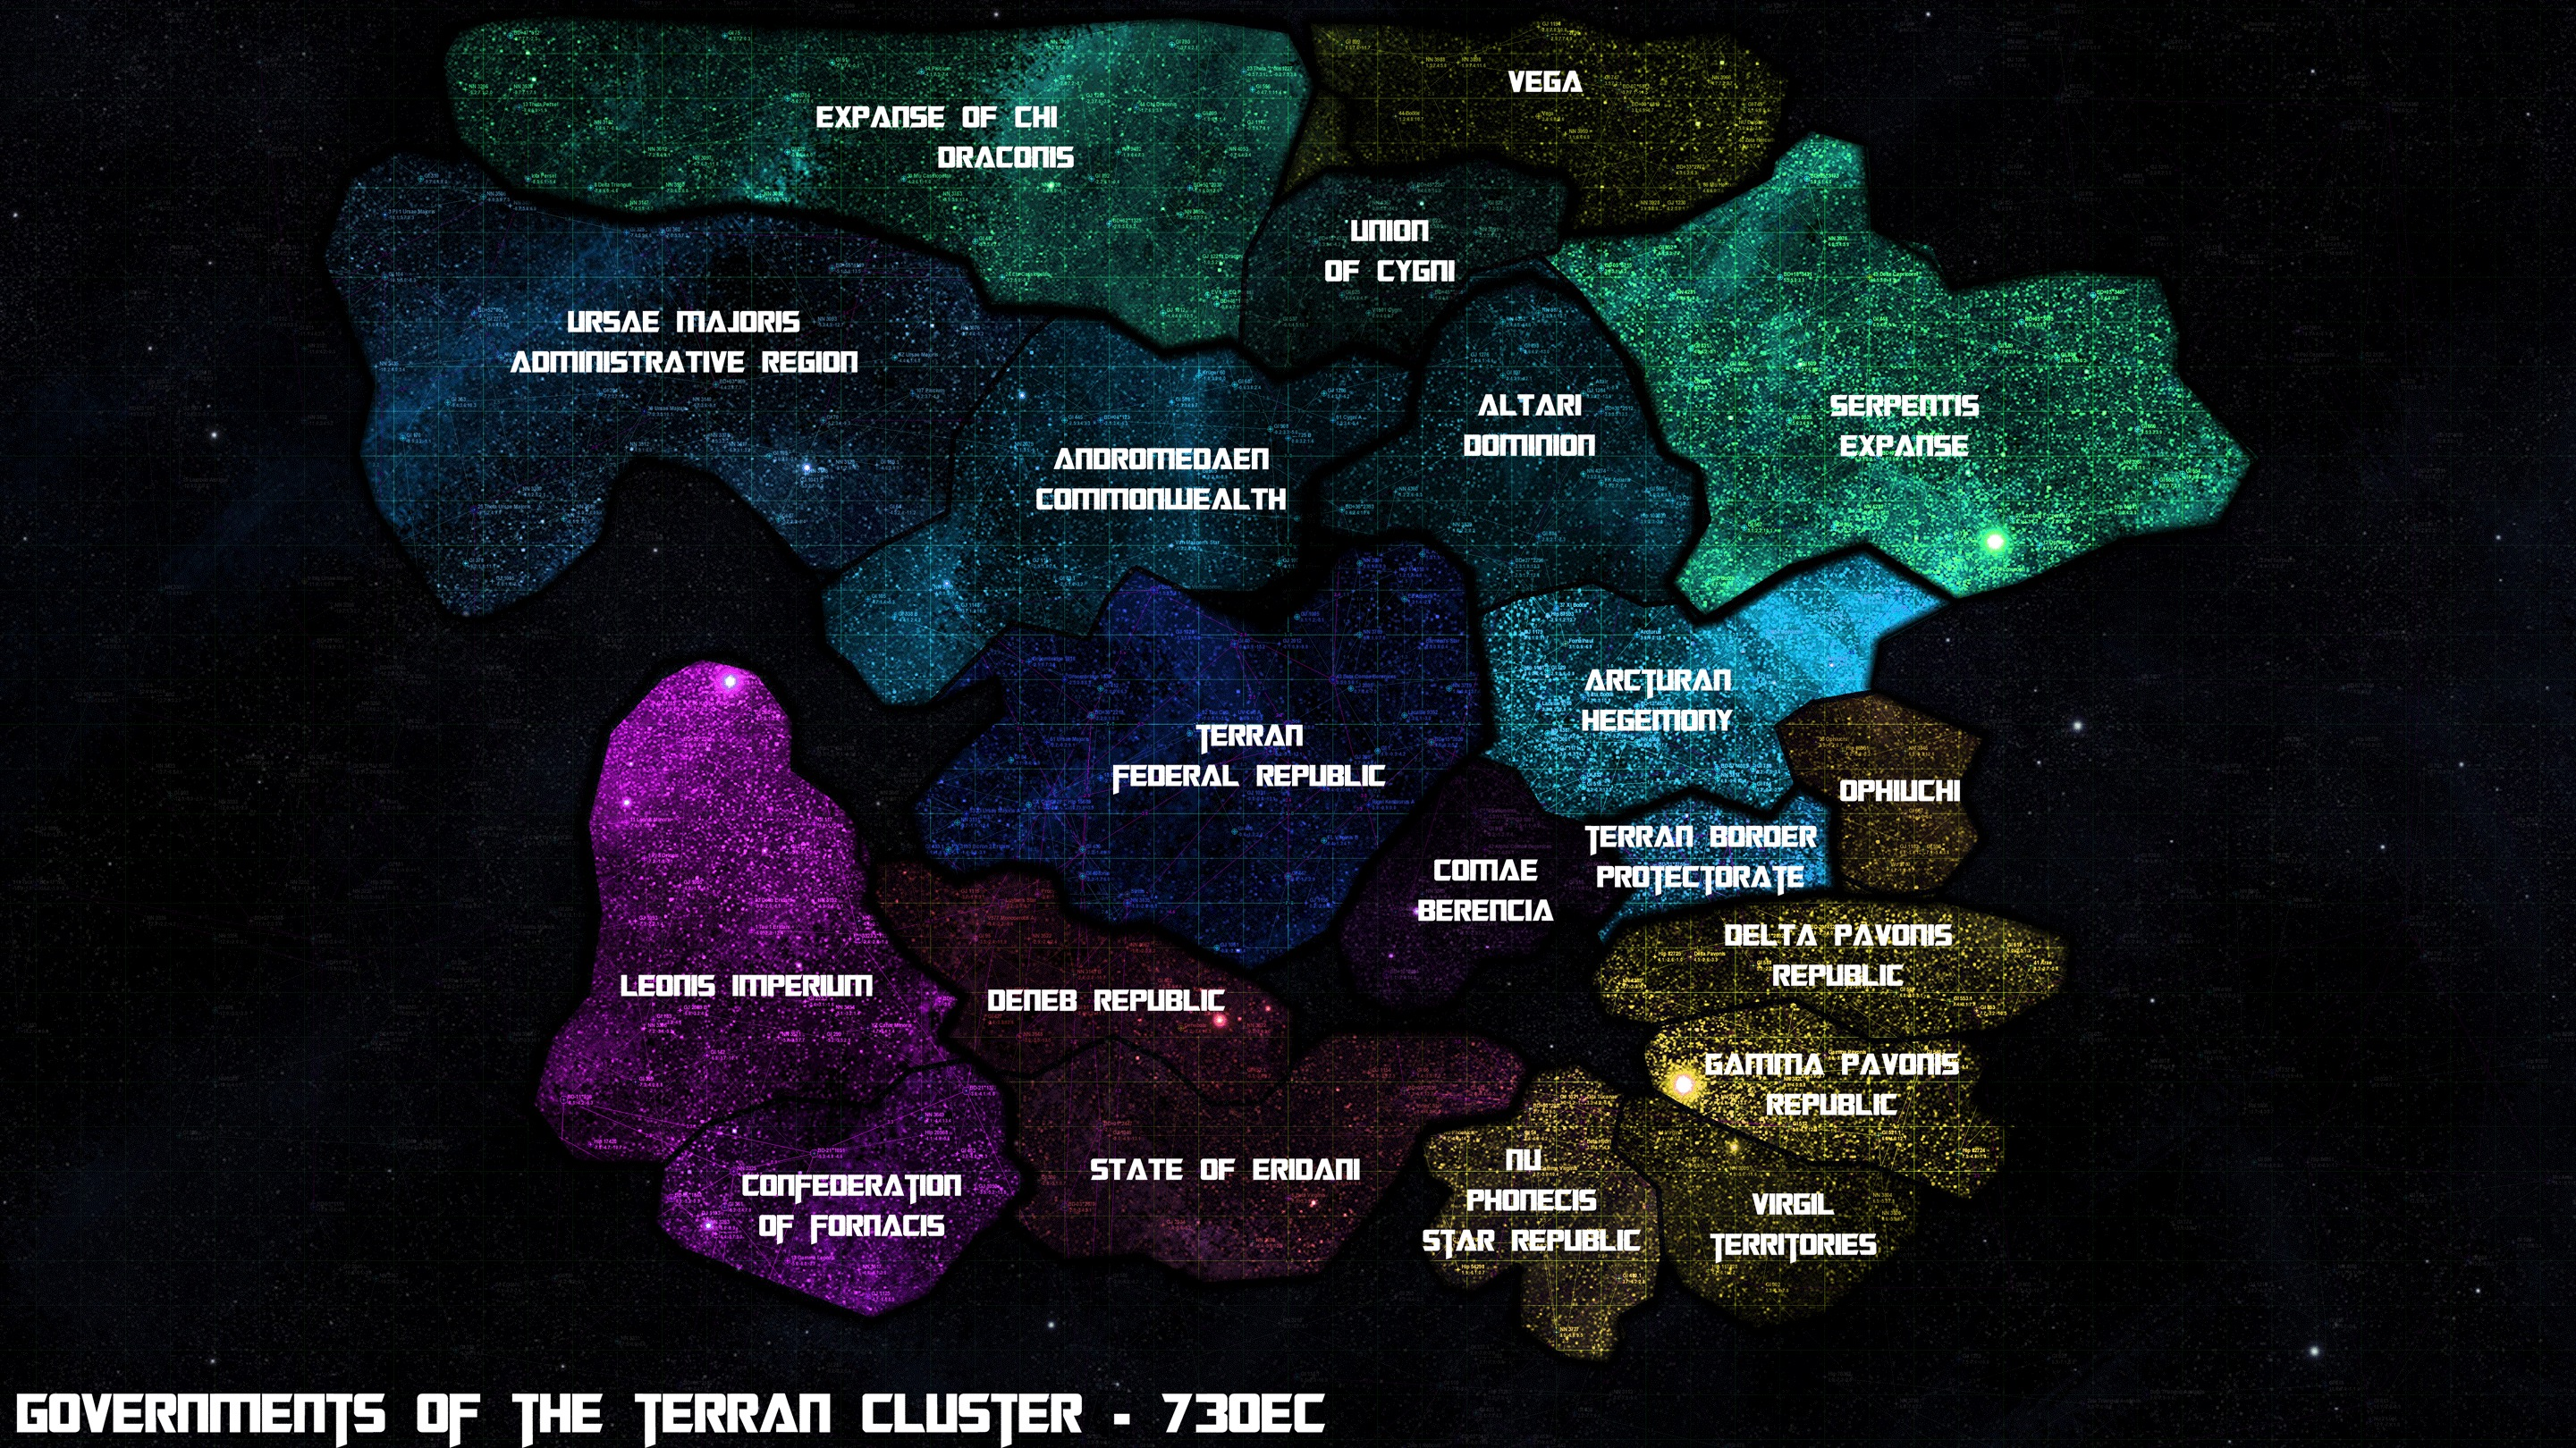 More Sci-Fi star mapping goodness - The Terran Cluster ...